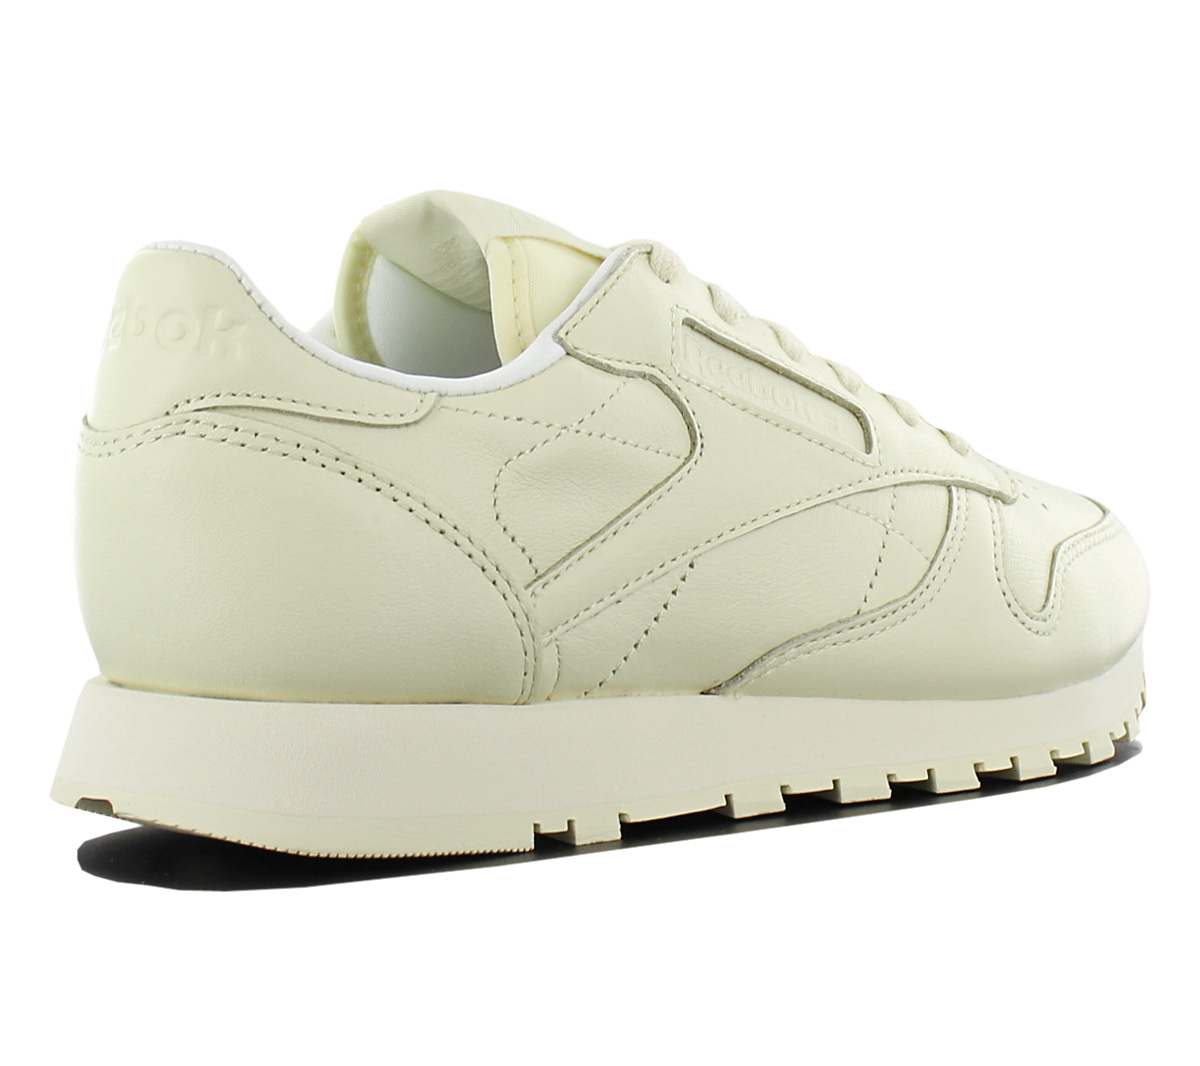 d63e214c7 Reebok Classic Leather Pastels Women s Sneakers Leather Shoes CL ...